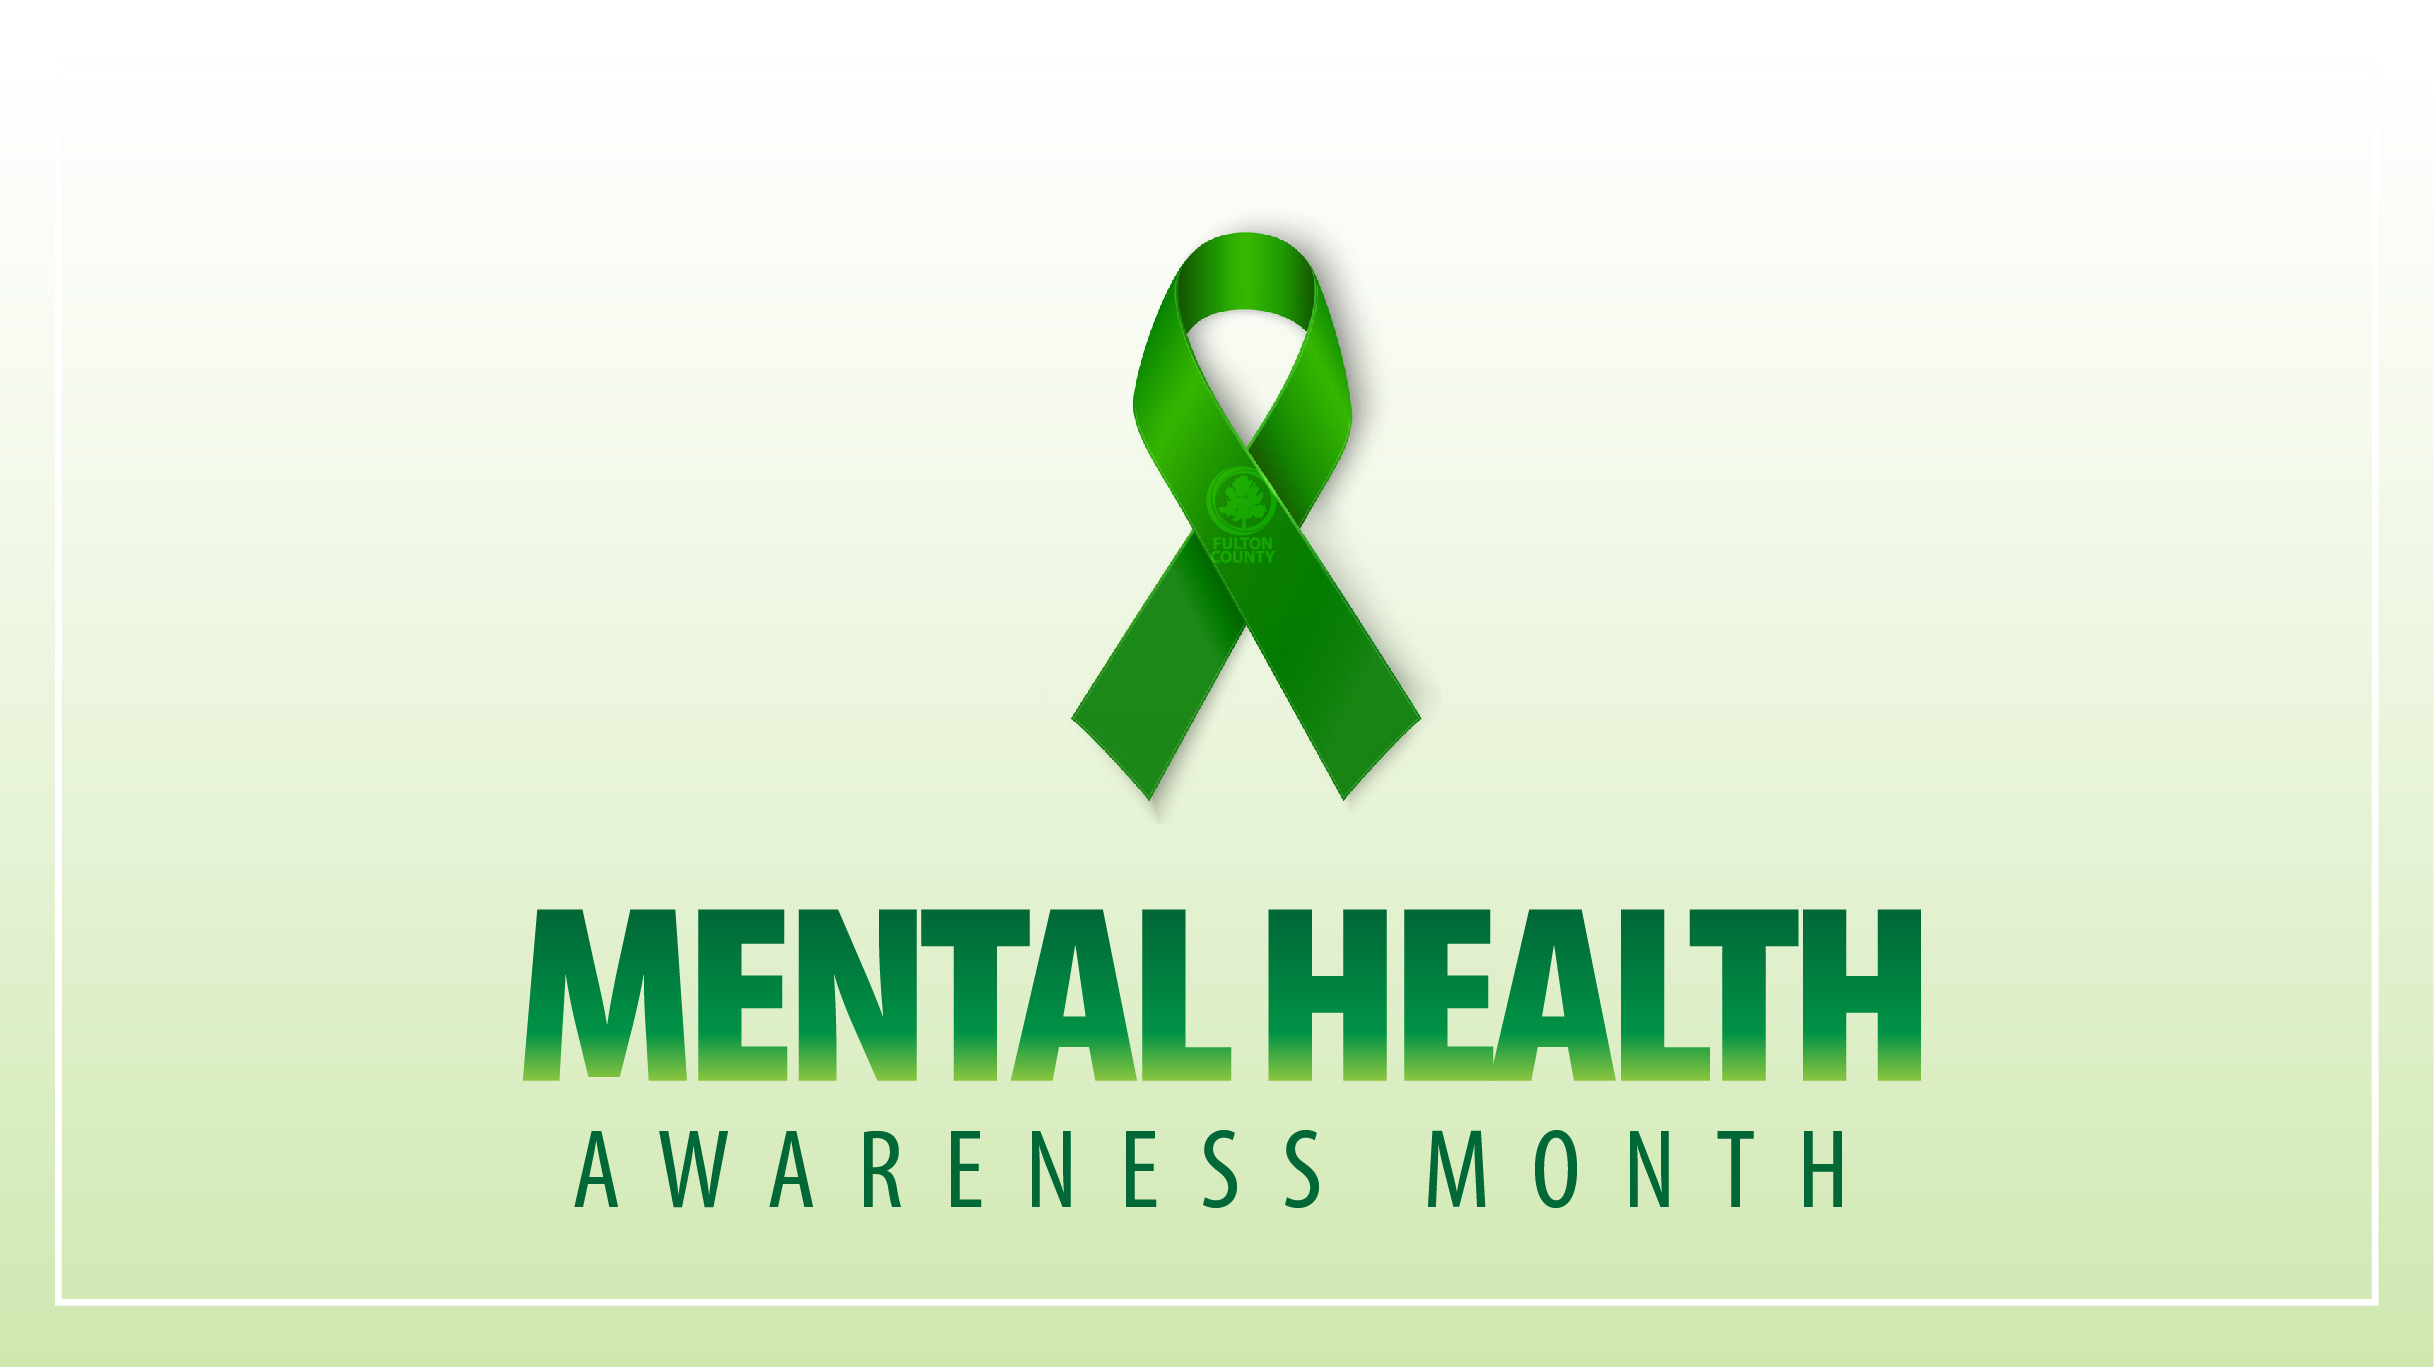 mental health awareness month with green ribbon